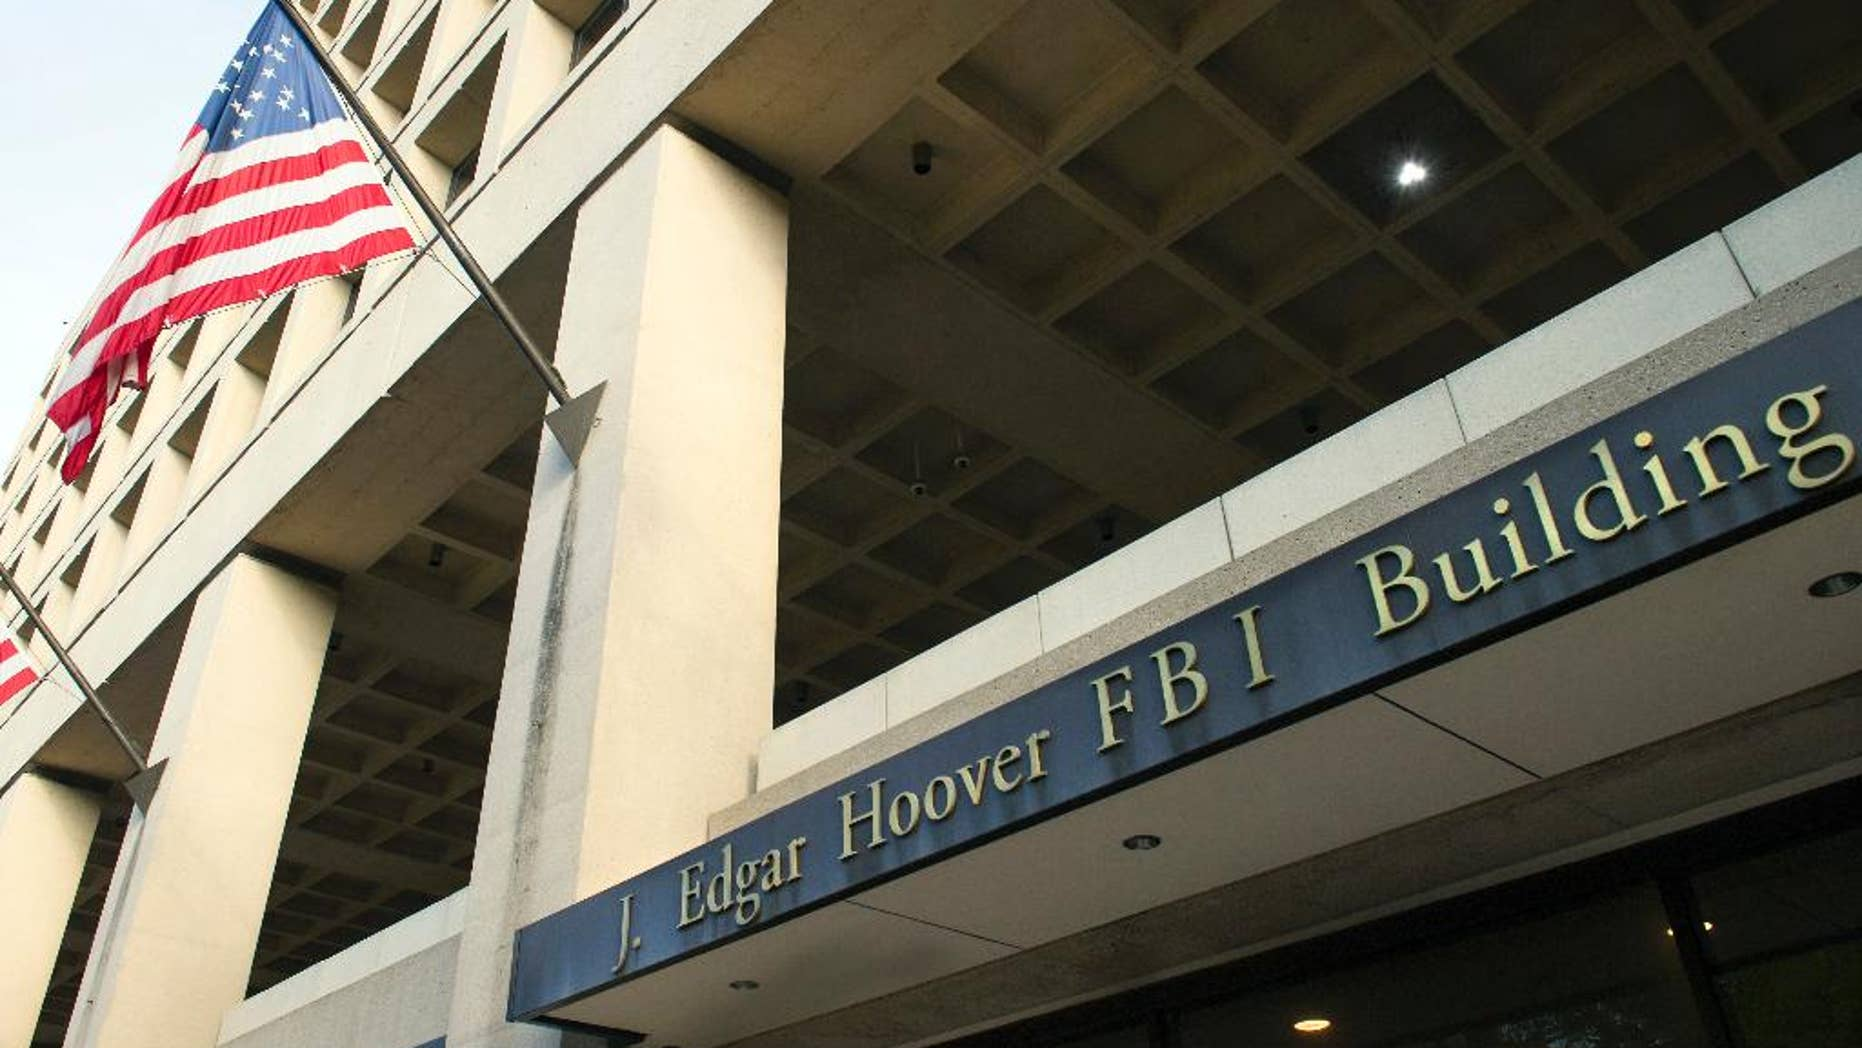 FILE - In this Nov. 2, 2016, file photo, the FBI's J. Edgar Hoover headquarter building in Washington. (AP Photo/Cliff Owen, File)